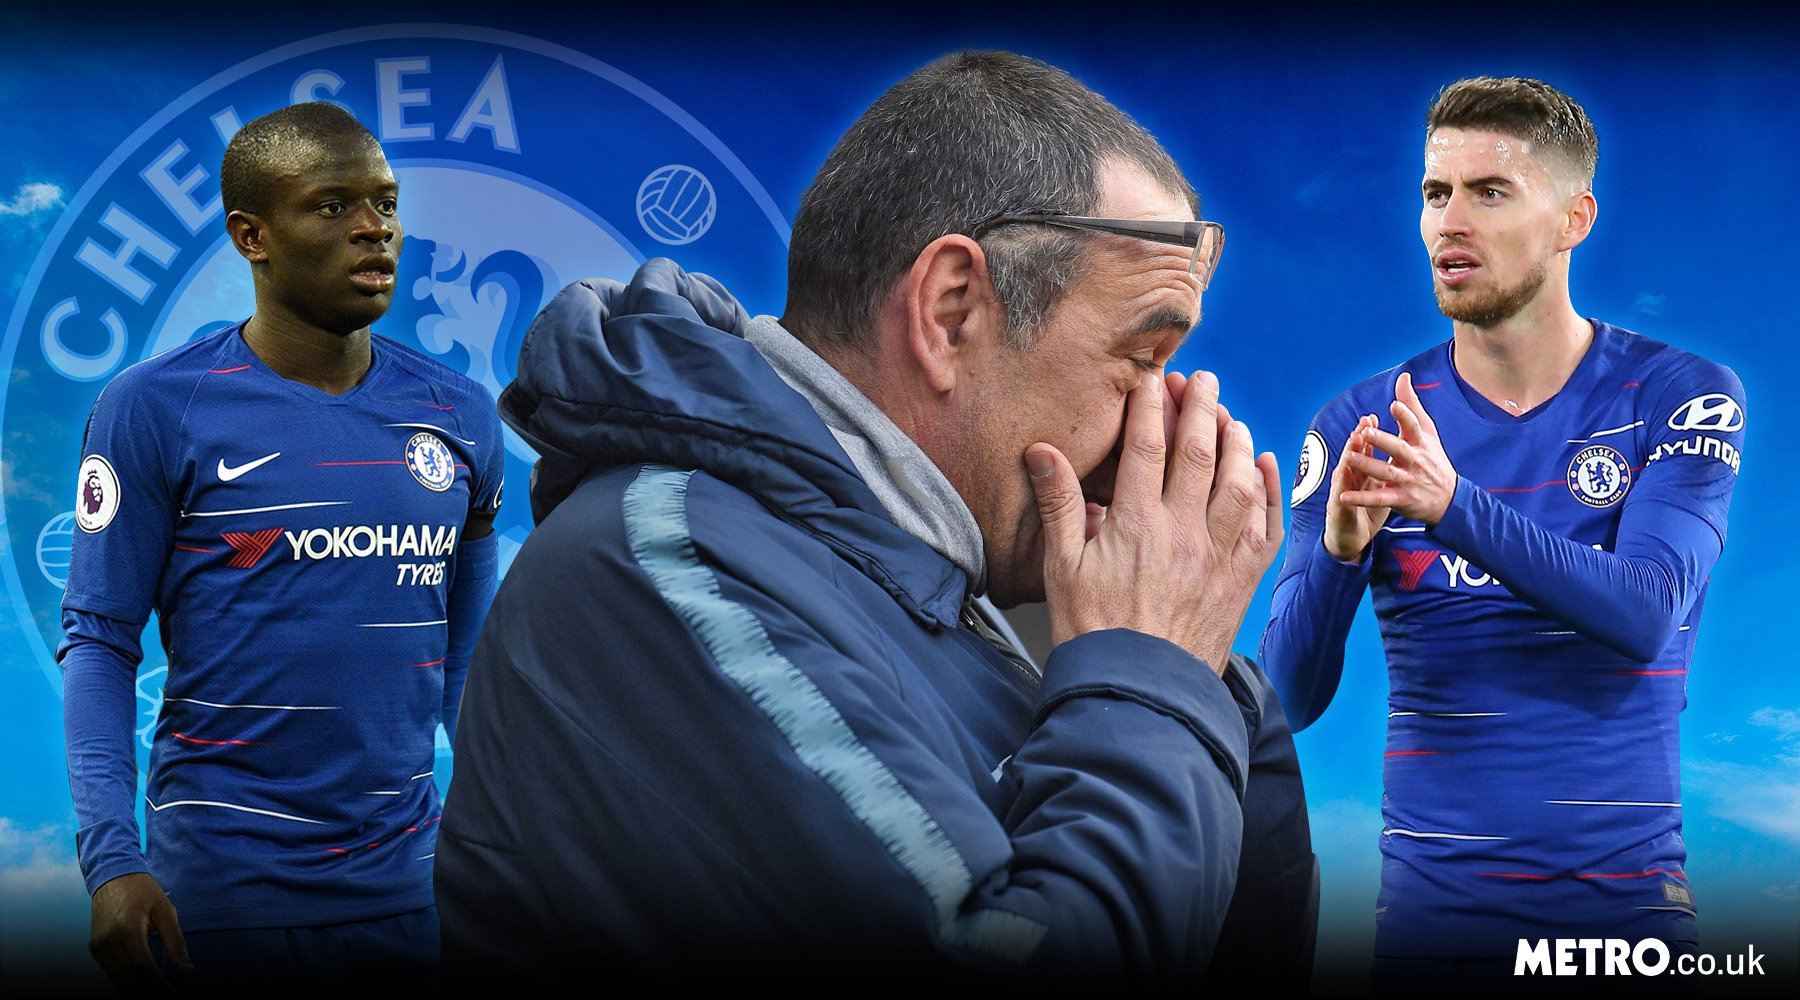 Why Chelsea's season is in danger of unravelling under Maurizio Sarri